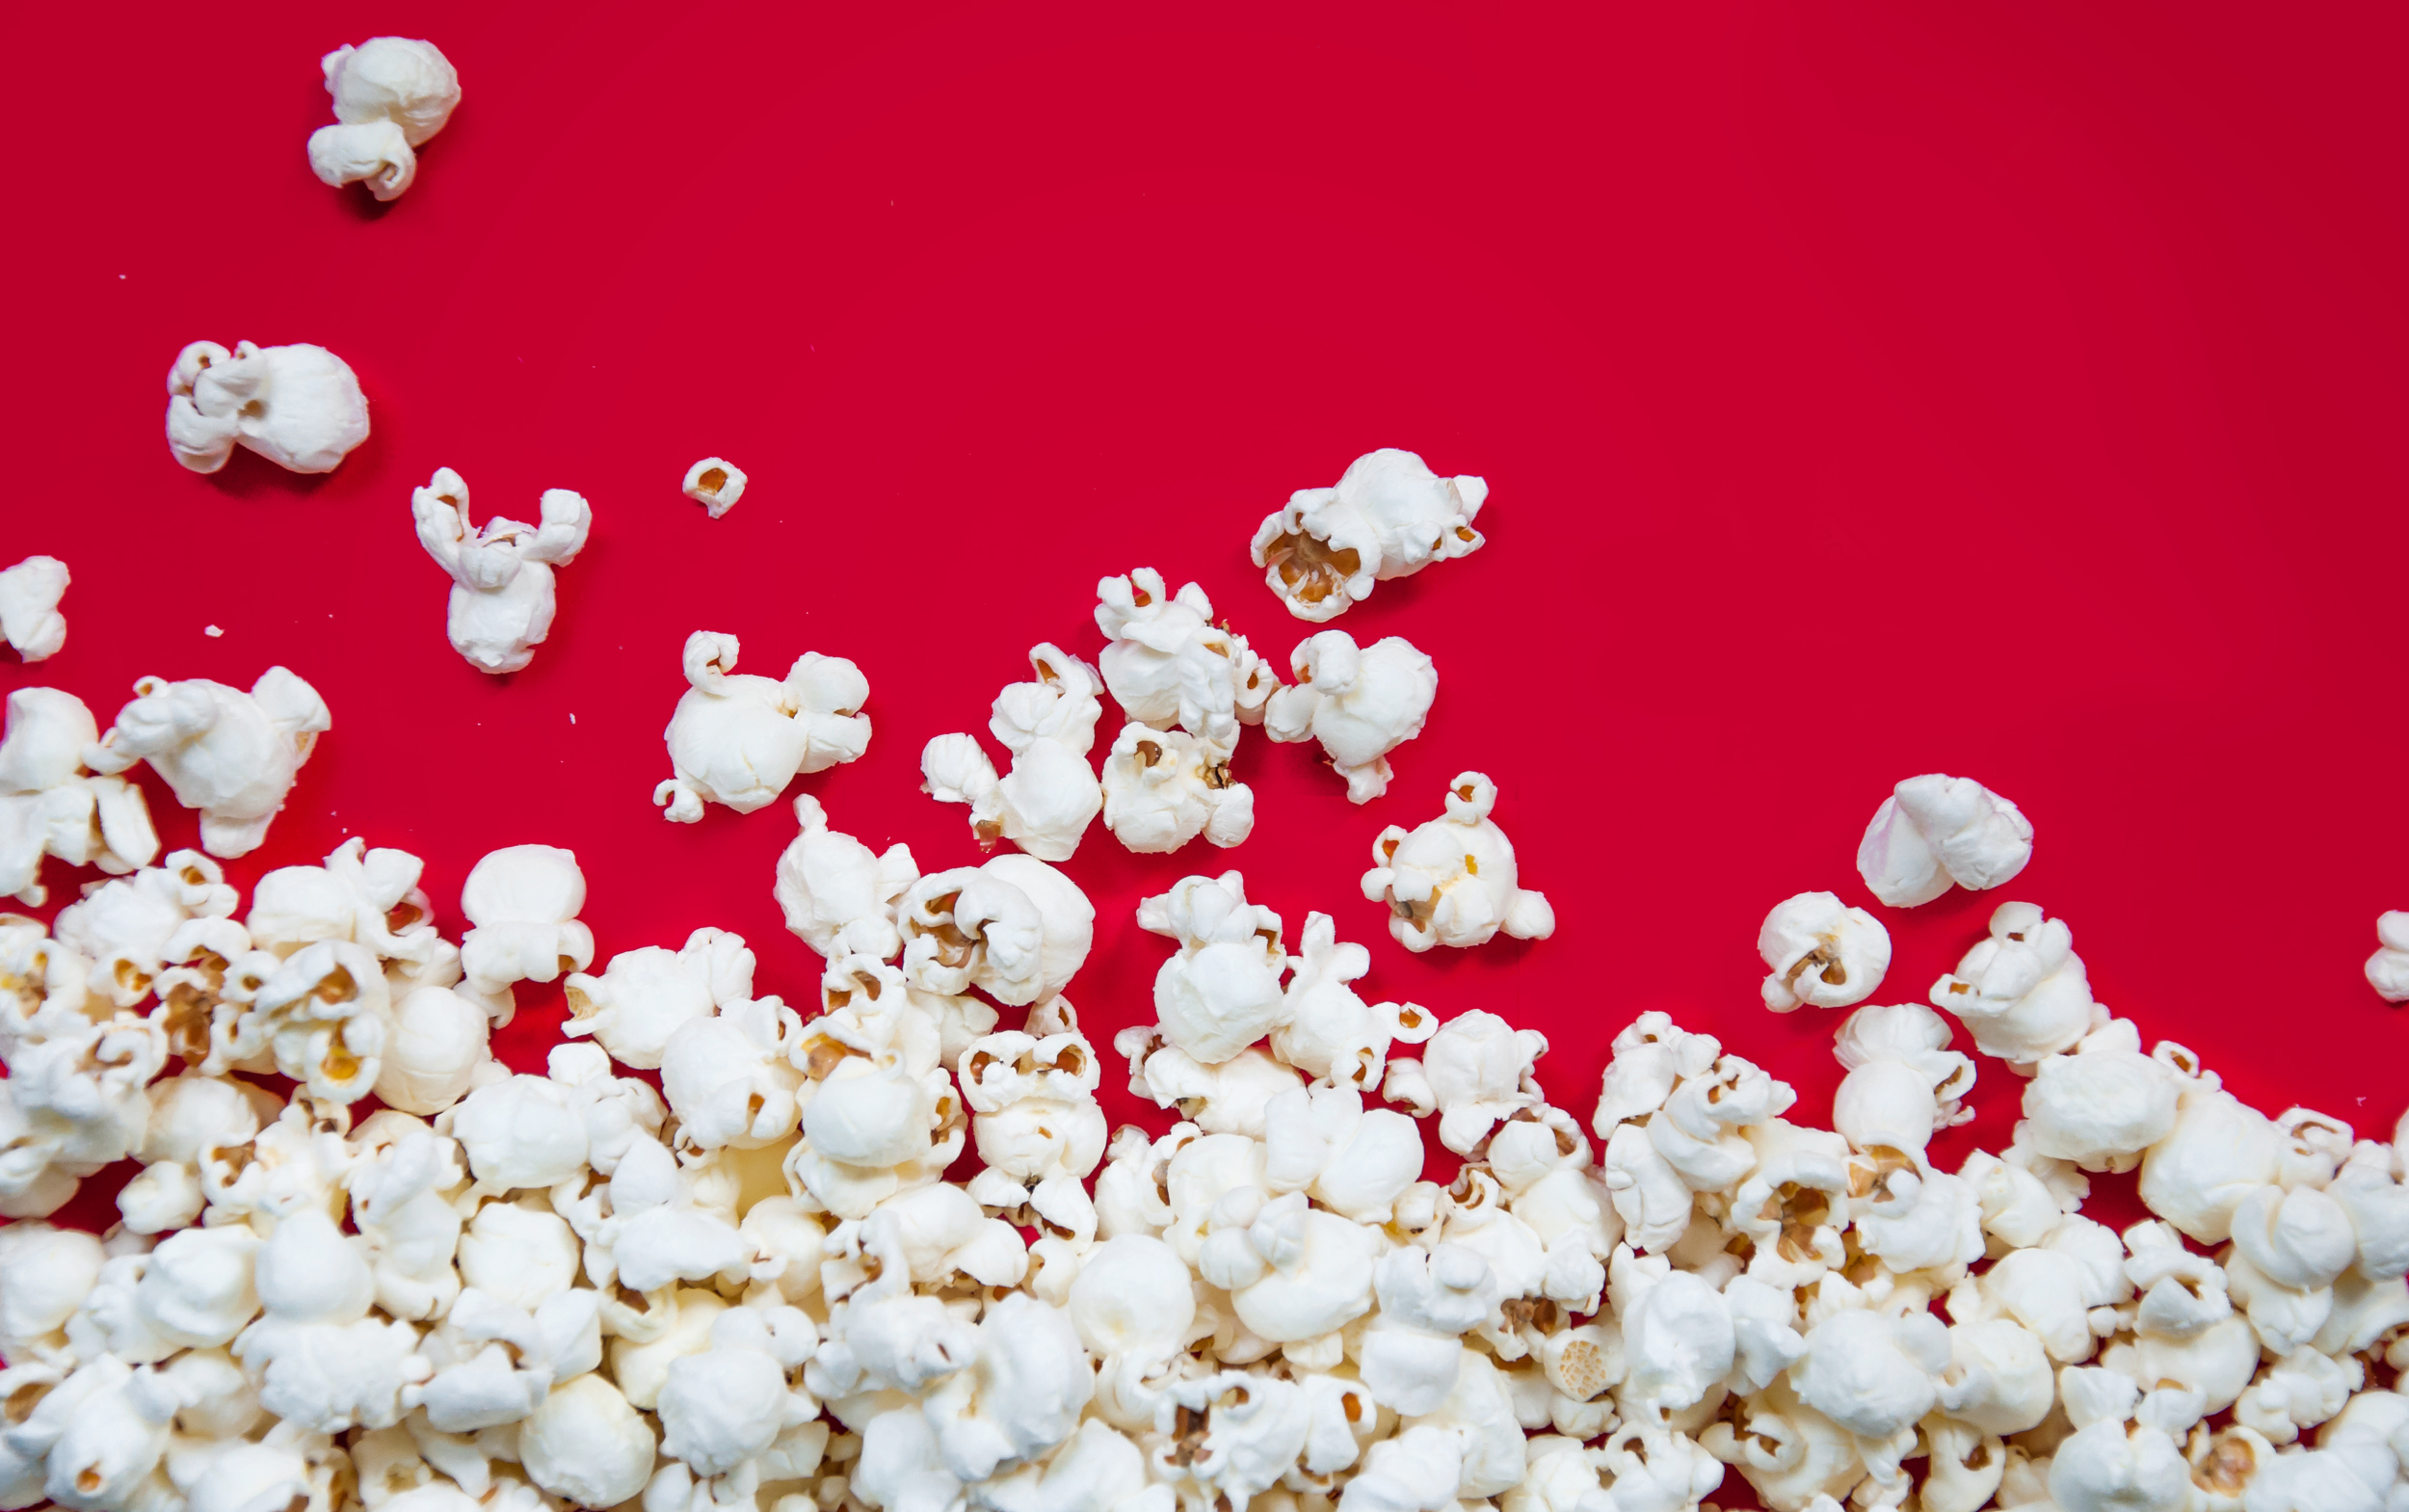 Popcorn spilled on red background photo